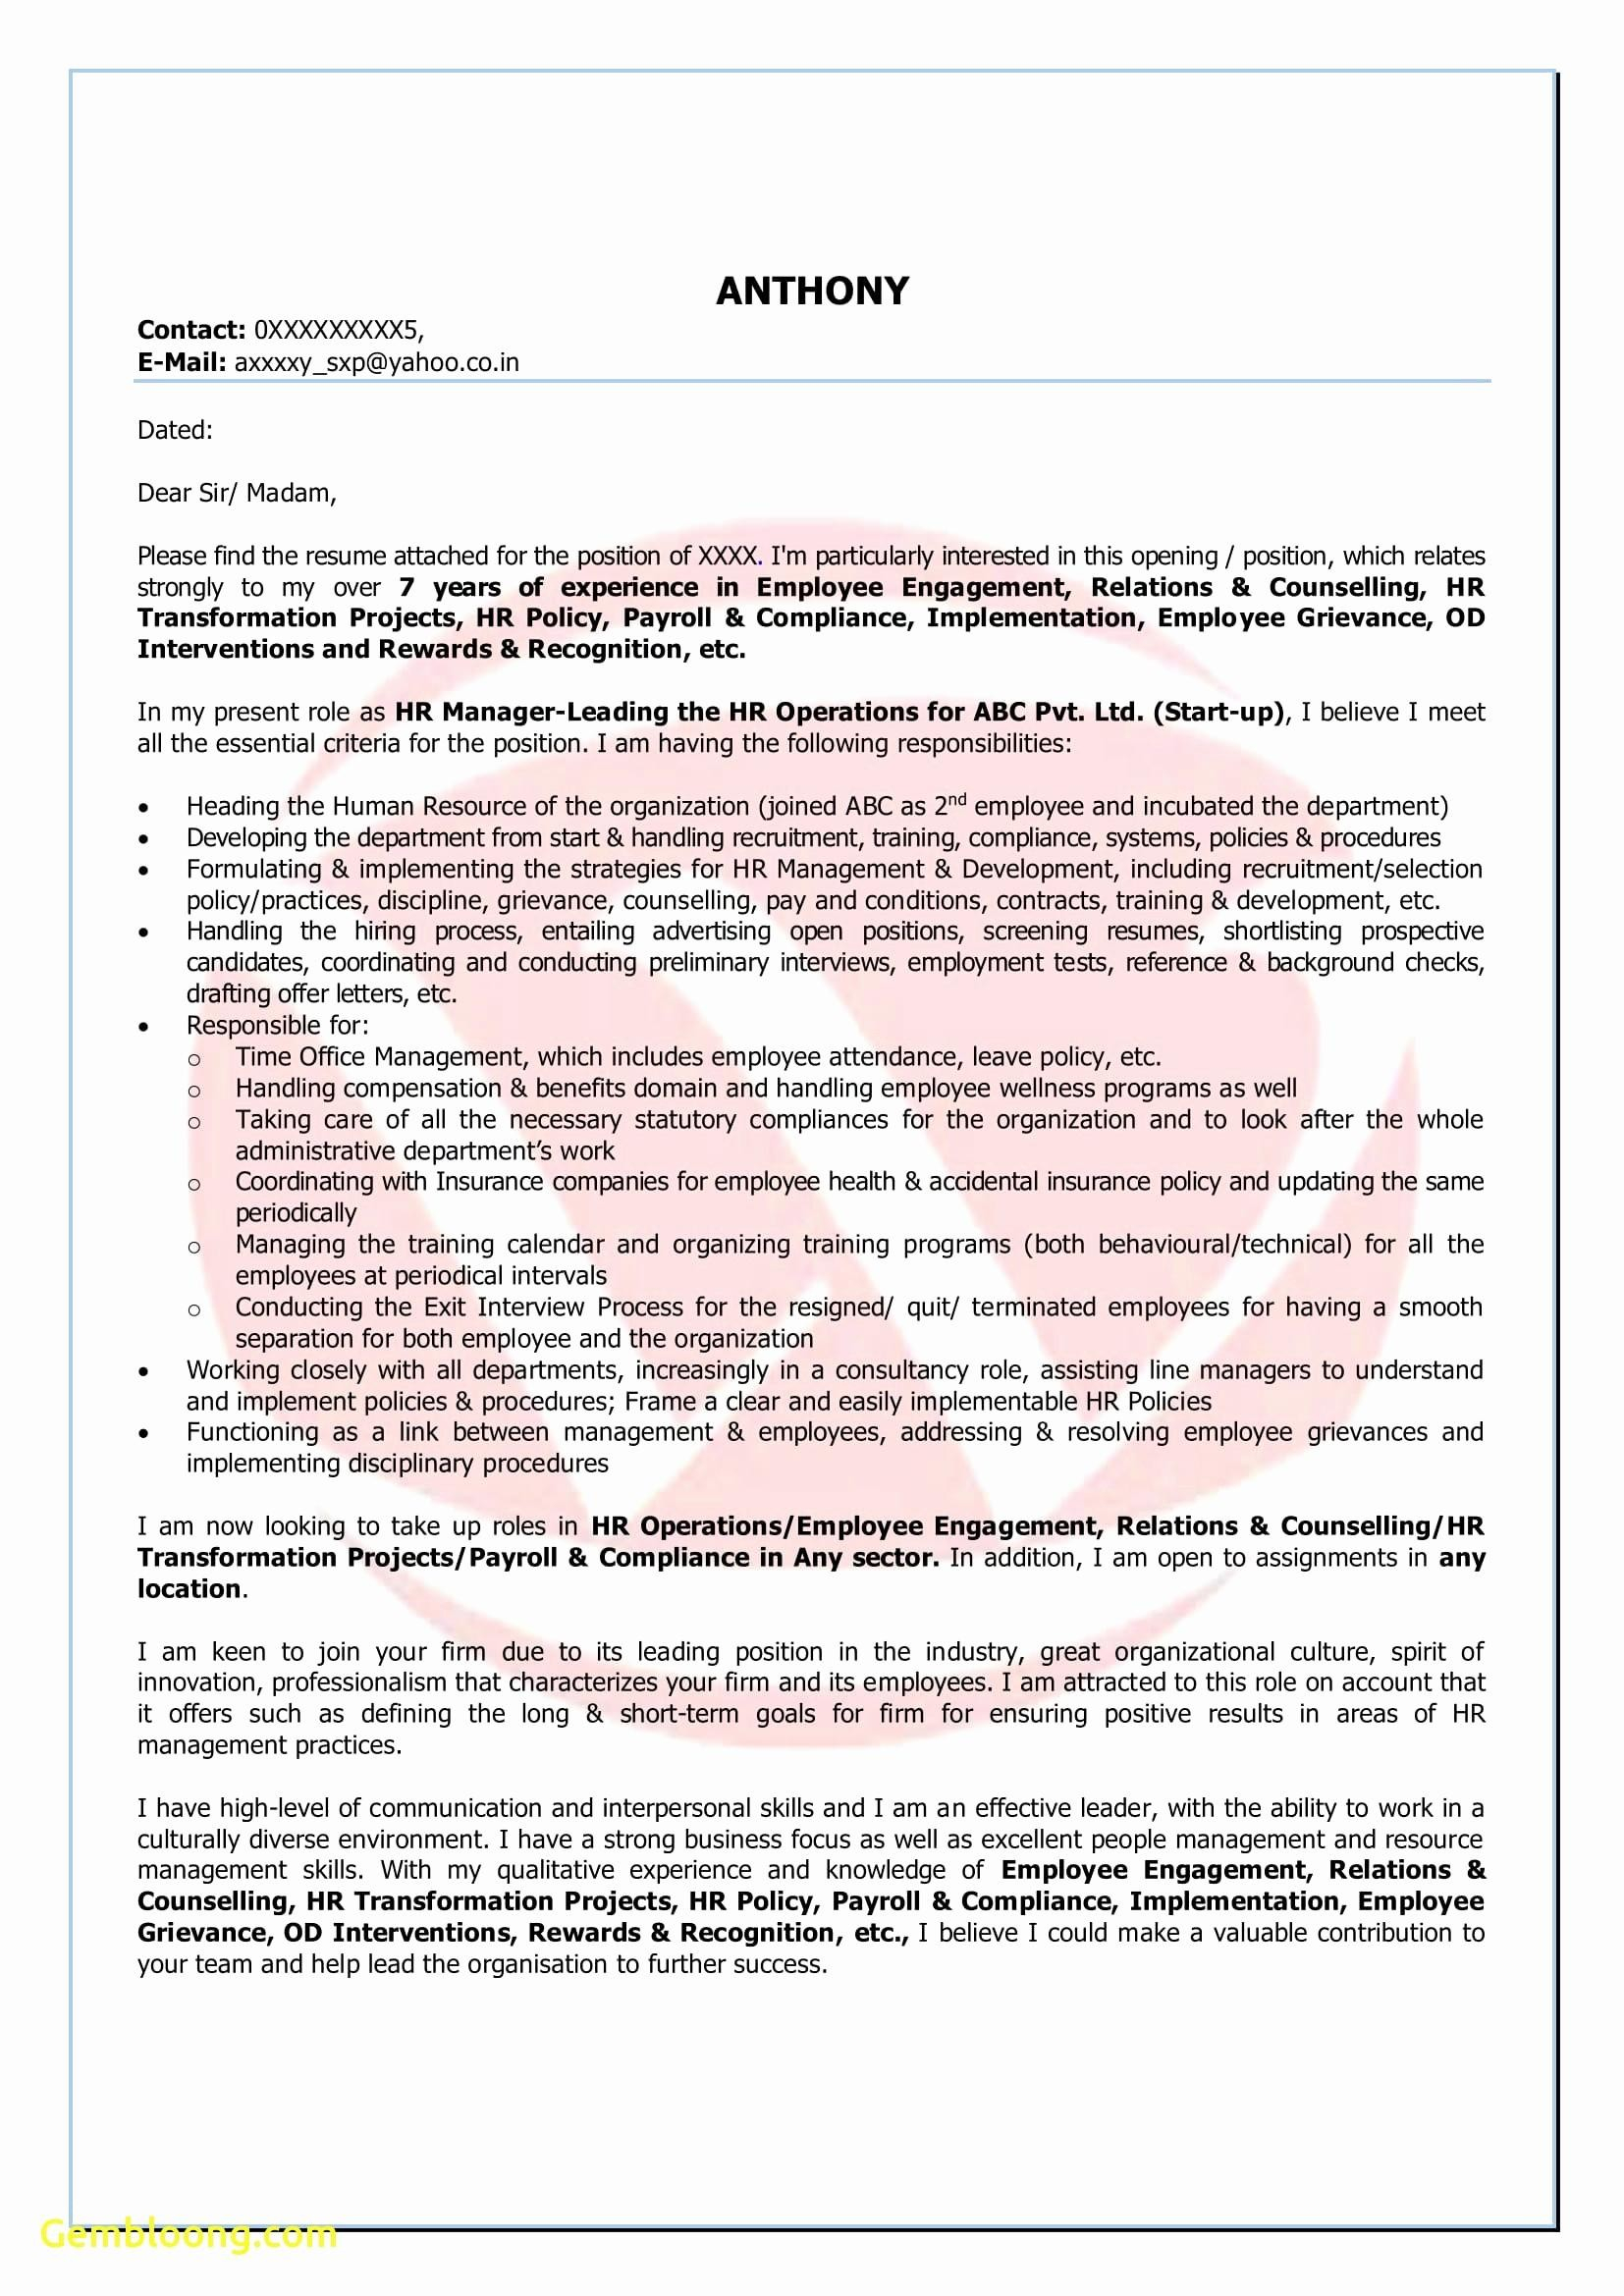 Targeted Resume Template Word - 21 Templates for Resumes